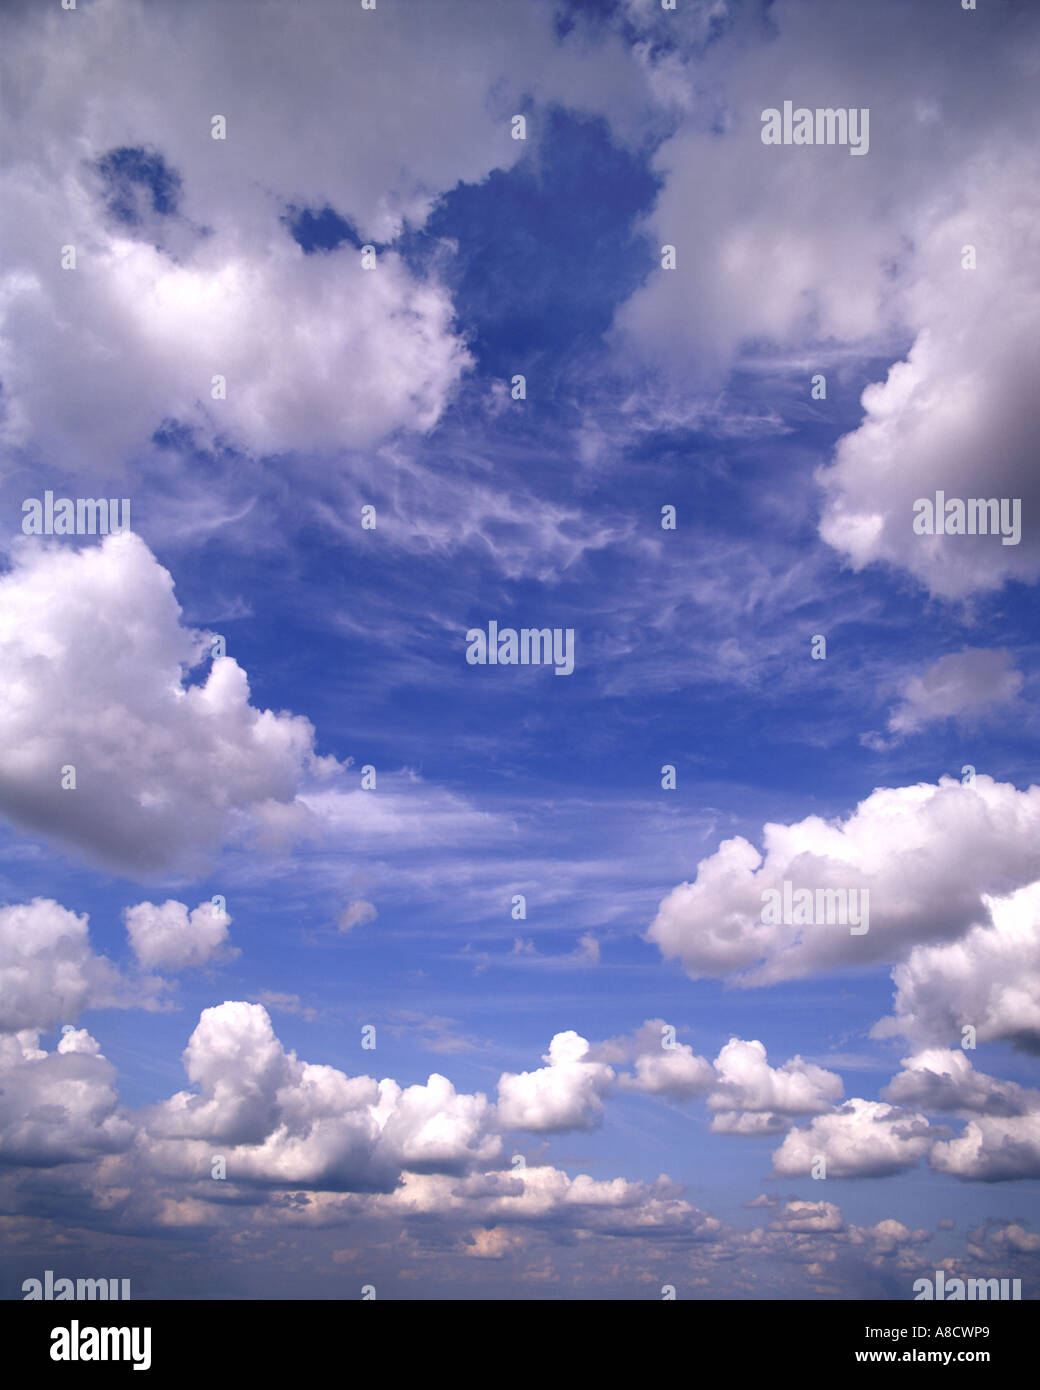 BACKGROUND CONCEPT:  Cloud Formation - Stock Image